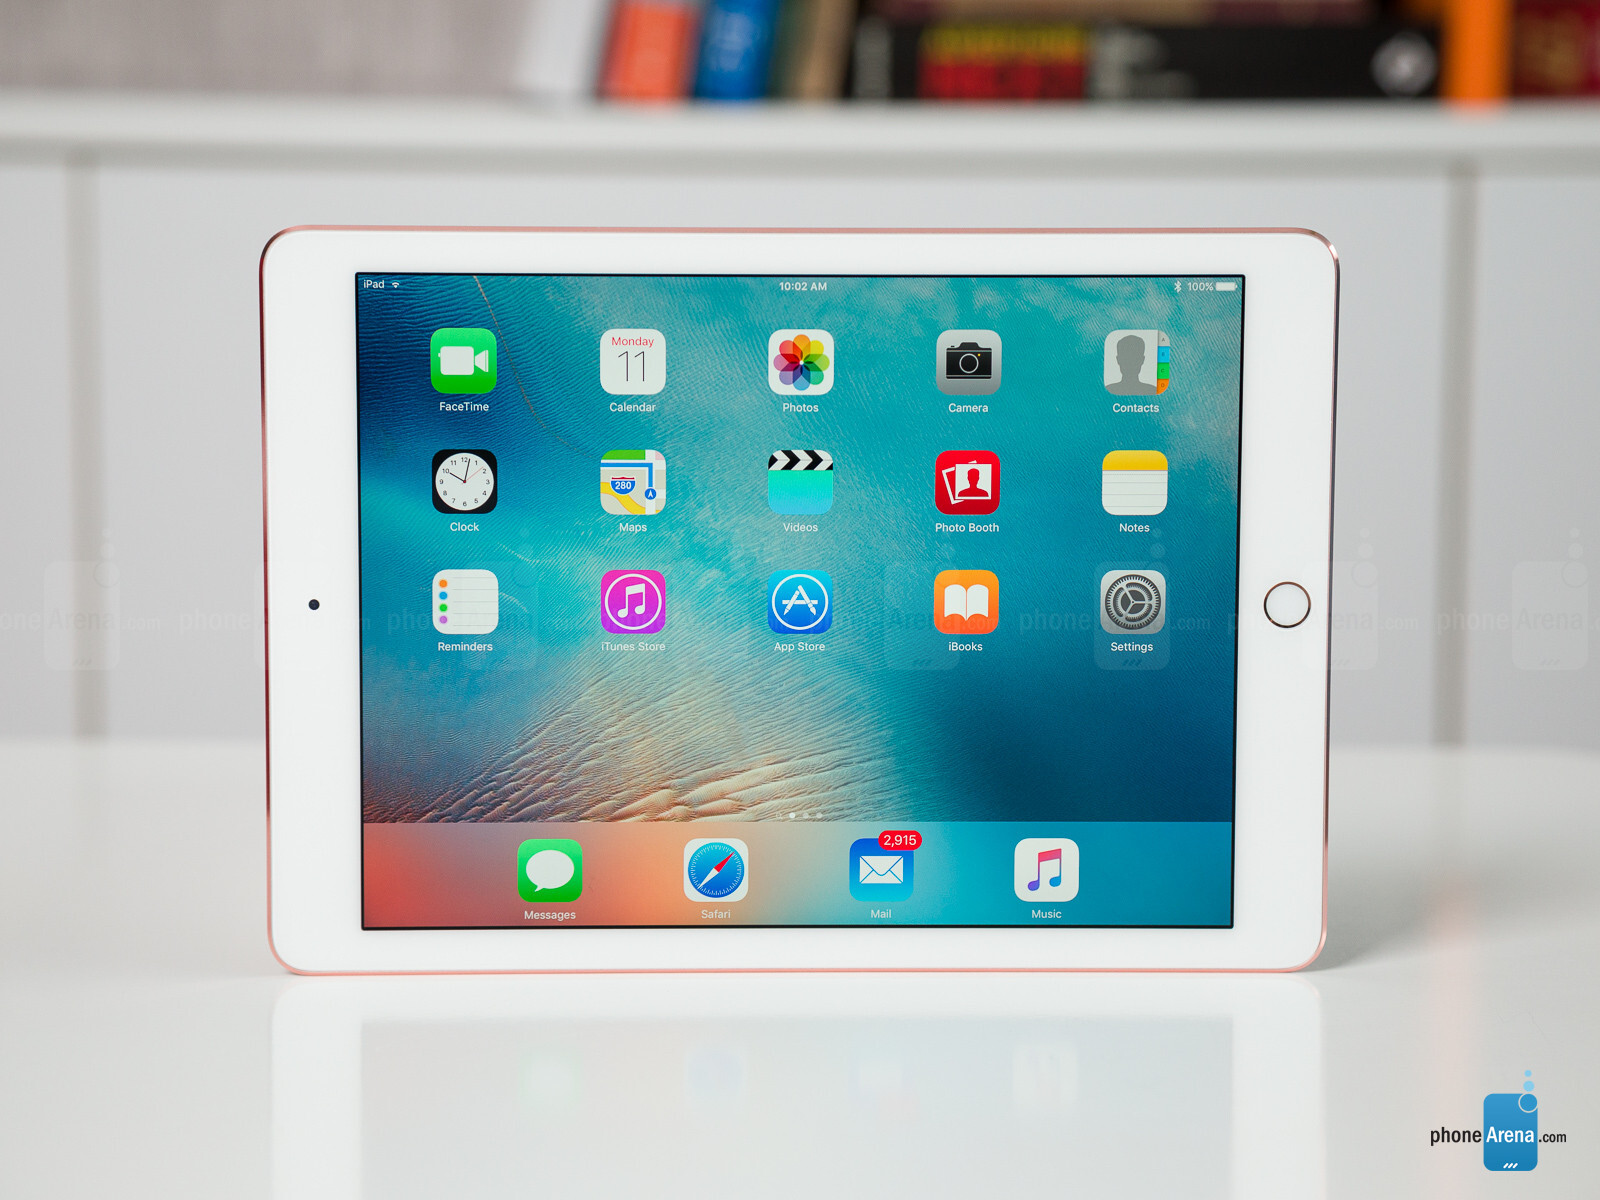 apple ipad psychographic segmentation Free essays on apple ipad marketing segmentation for students use our papers to help you with yours 1 - 30.